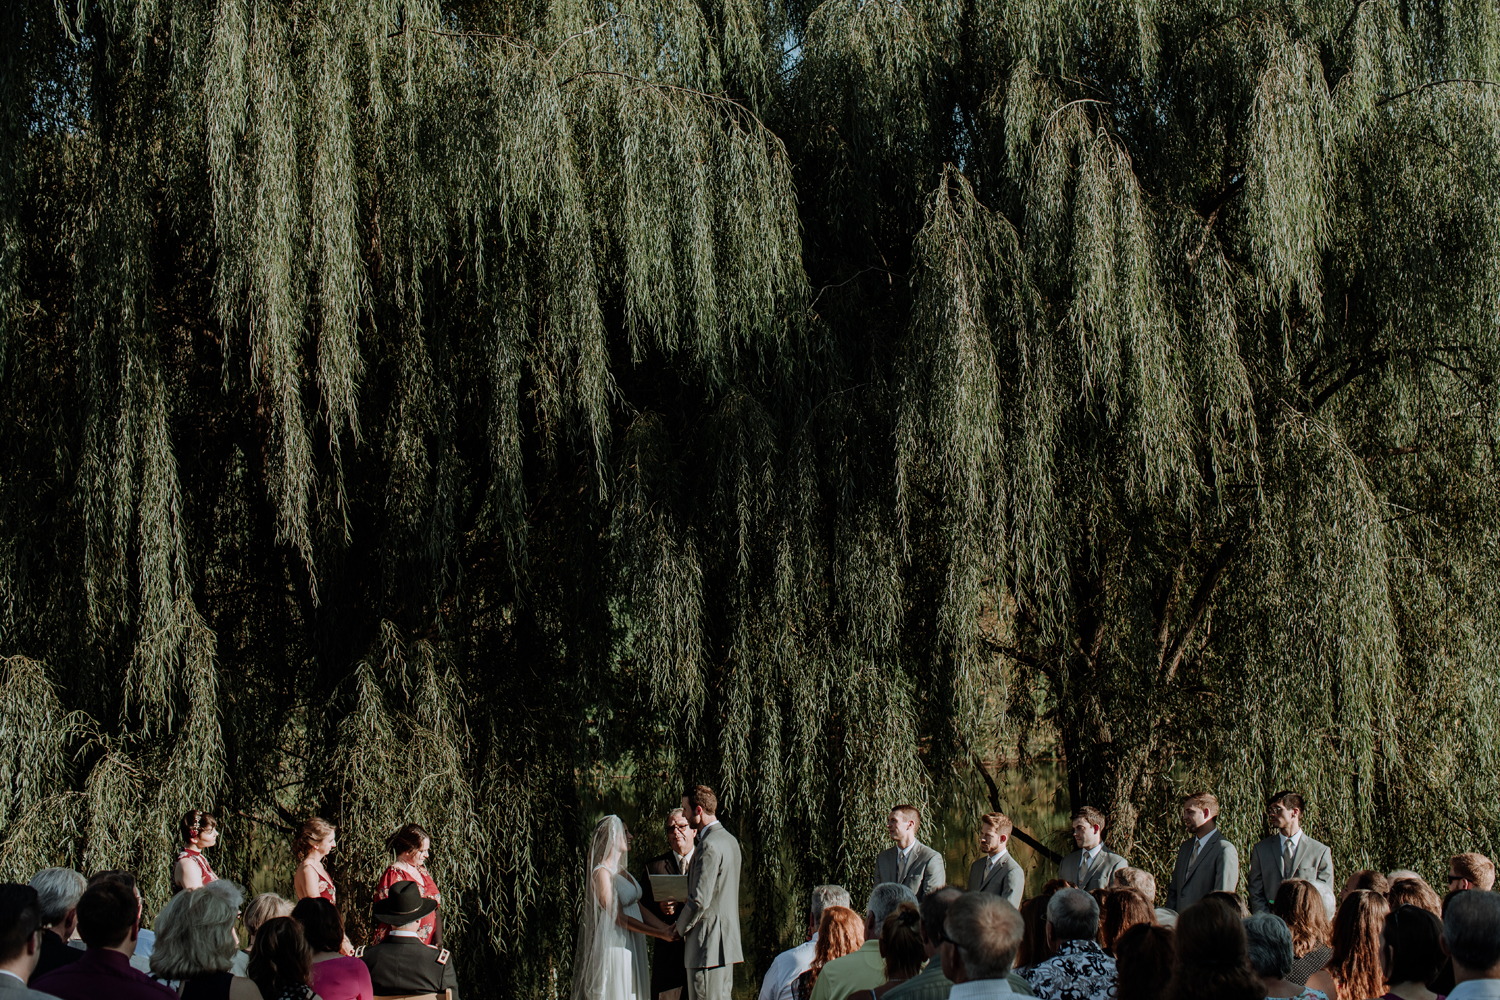 blue-bottle-farm-wedding-ceremony-photography-pine-grove-pennsylvania-5